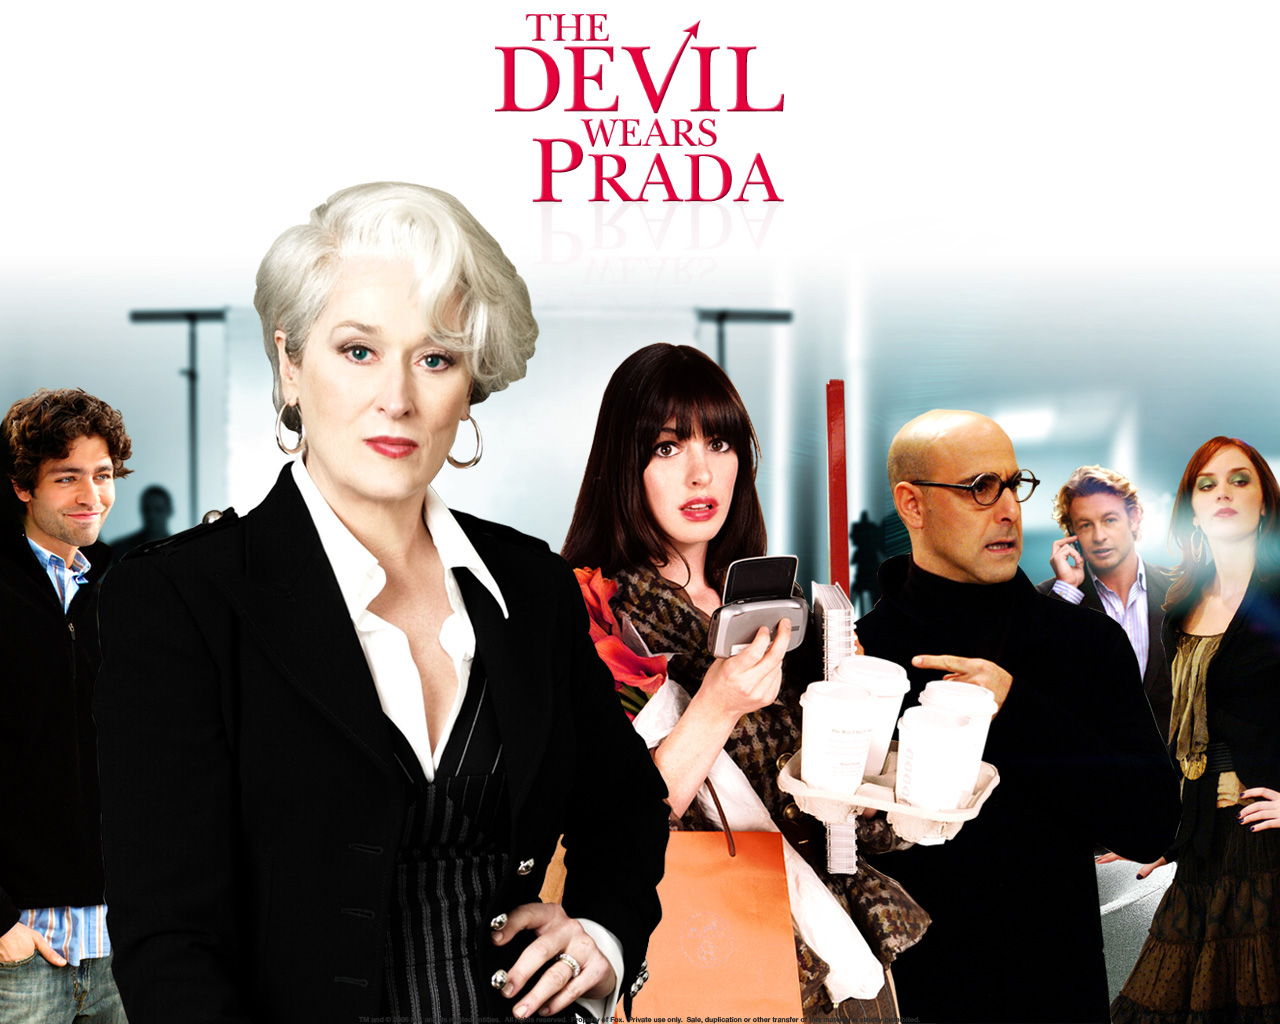 filepicker%2FkFcRxXe7Rk6tZck28dET devil wears prada Real Life Lessons That Can Be Learned by Watching .....  The Devil Wears Prada?